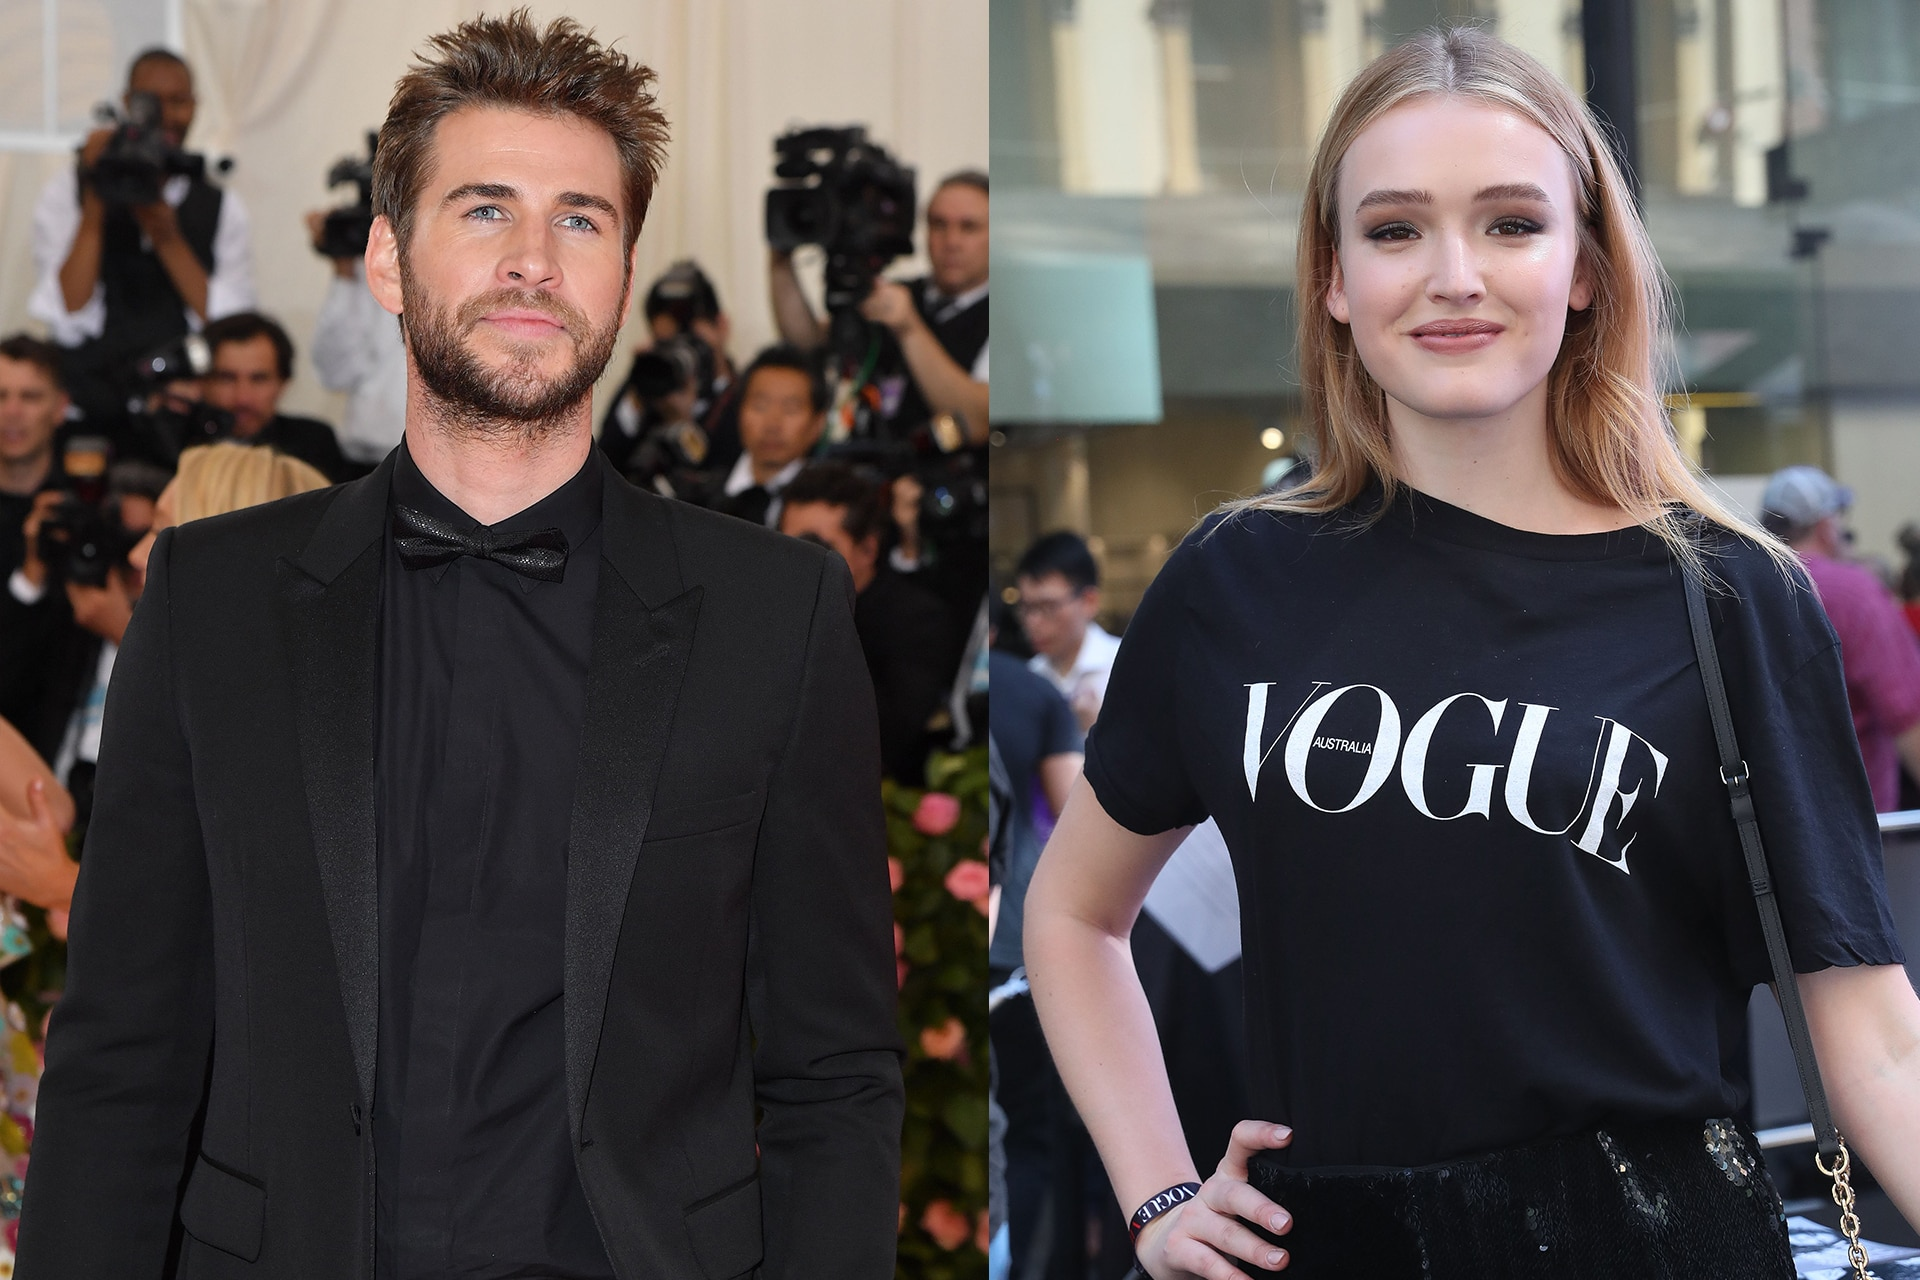 Is Liam Hemsworth dating Australian actor Maddison Brown?